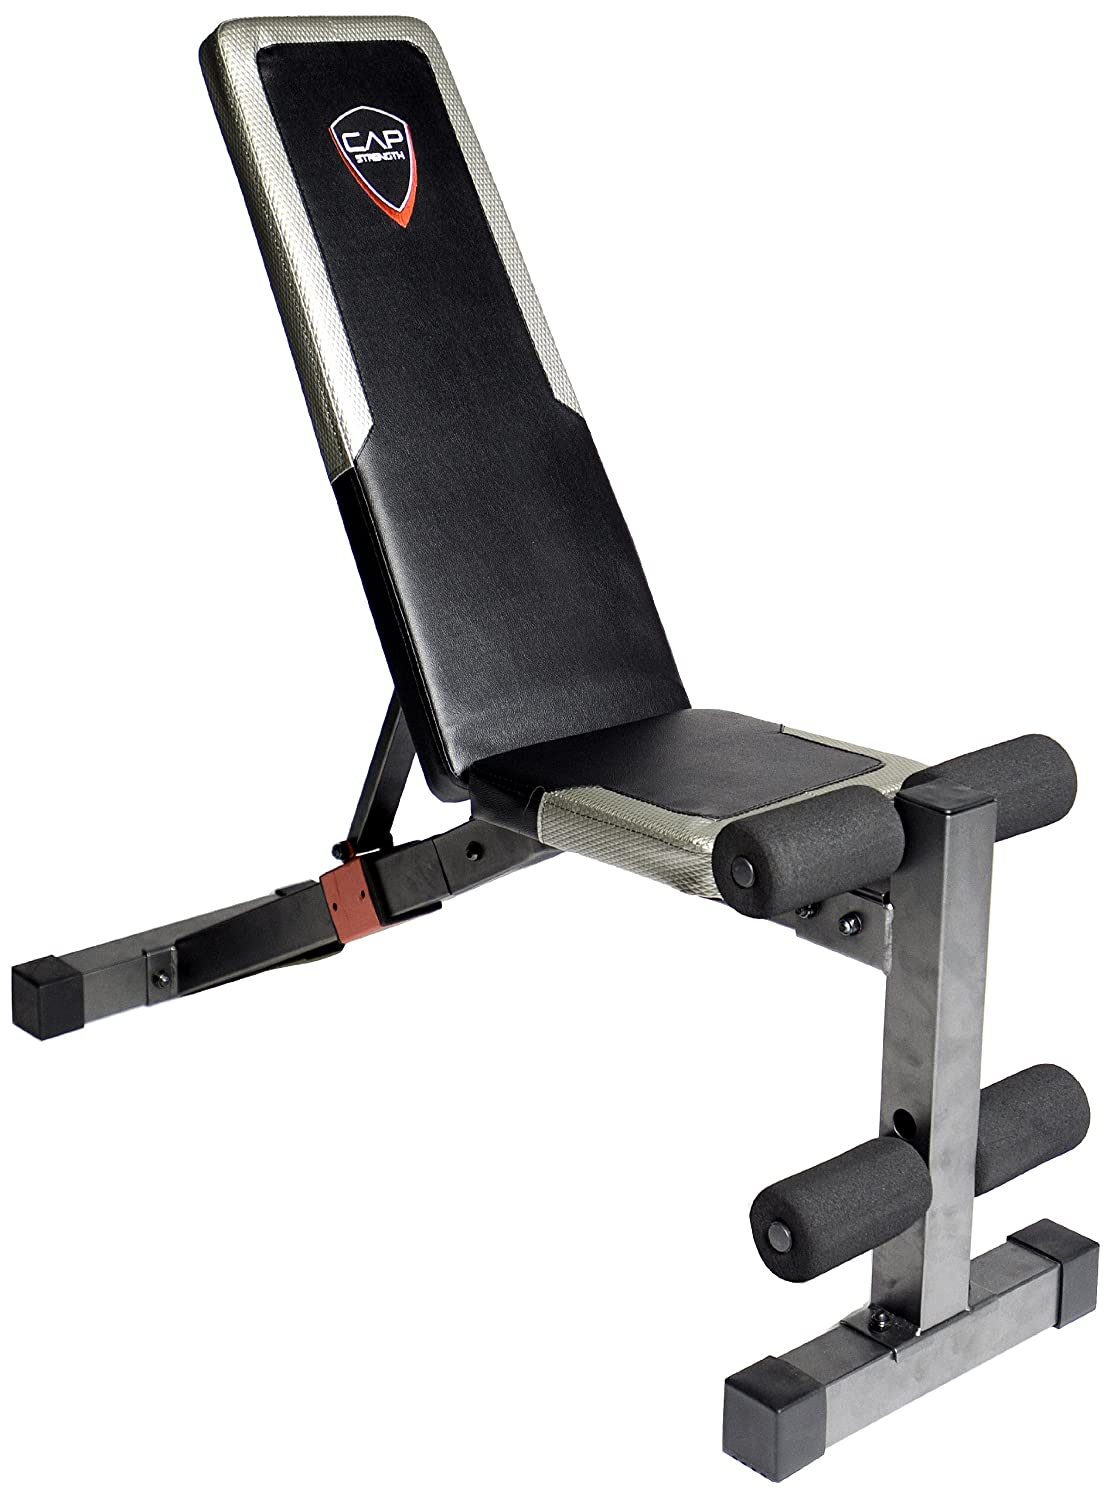 CAP Barbell Portable Bench